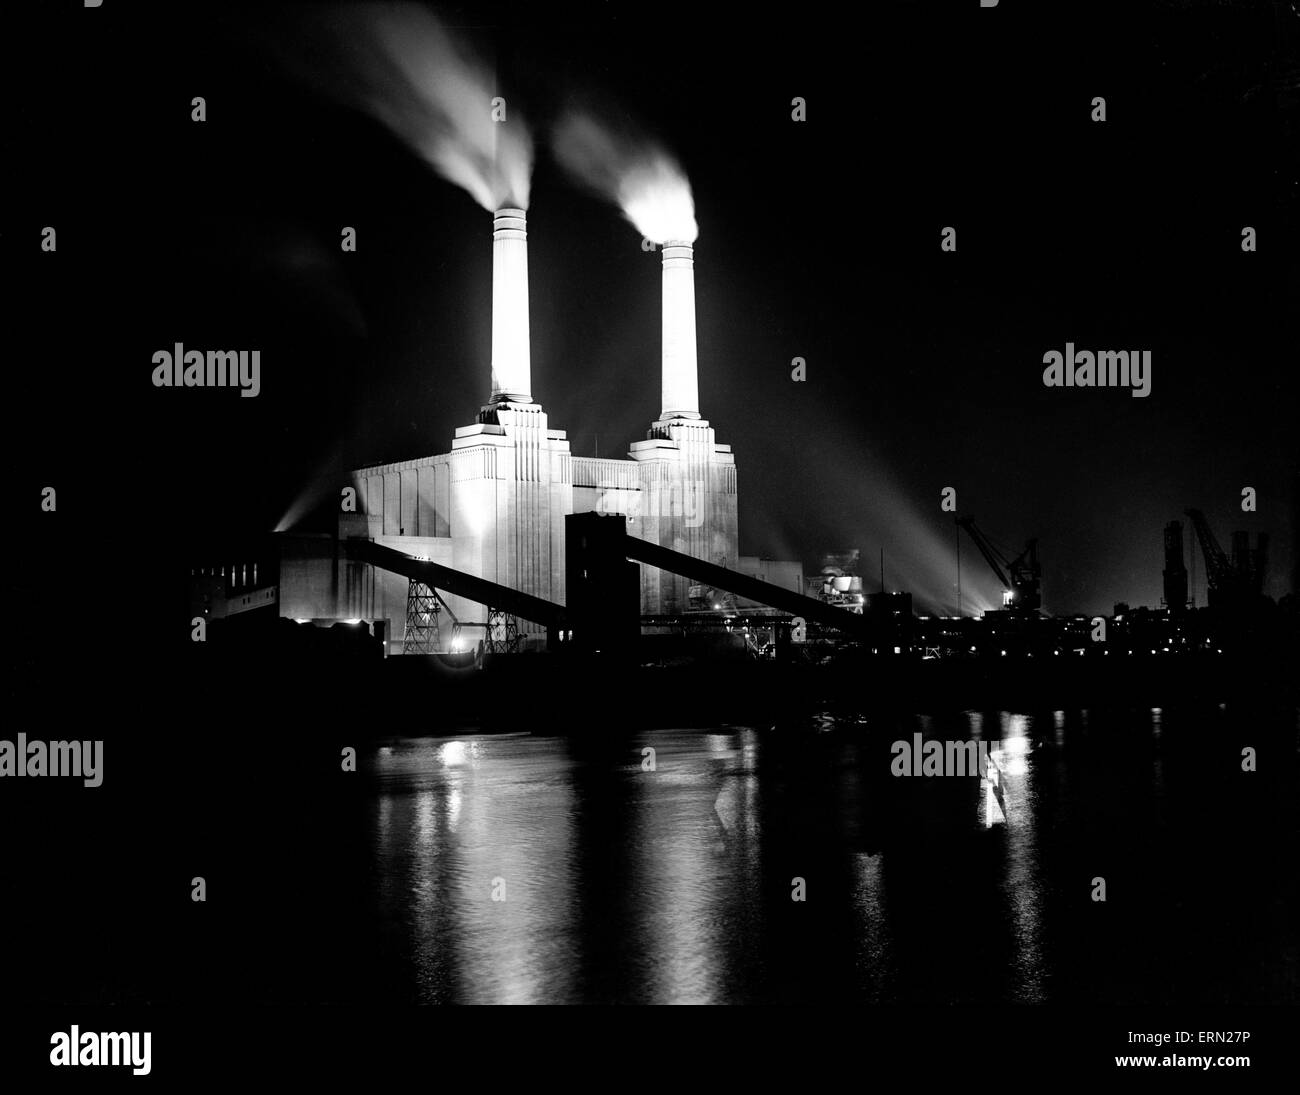 Battersea Power Station flood illuminated for the Festival of Britain, 27th May 1951. - Stock Image